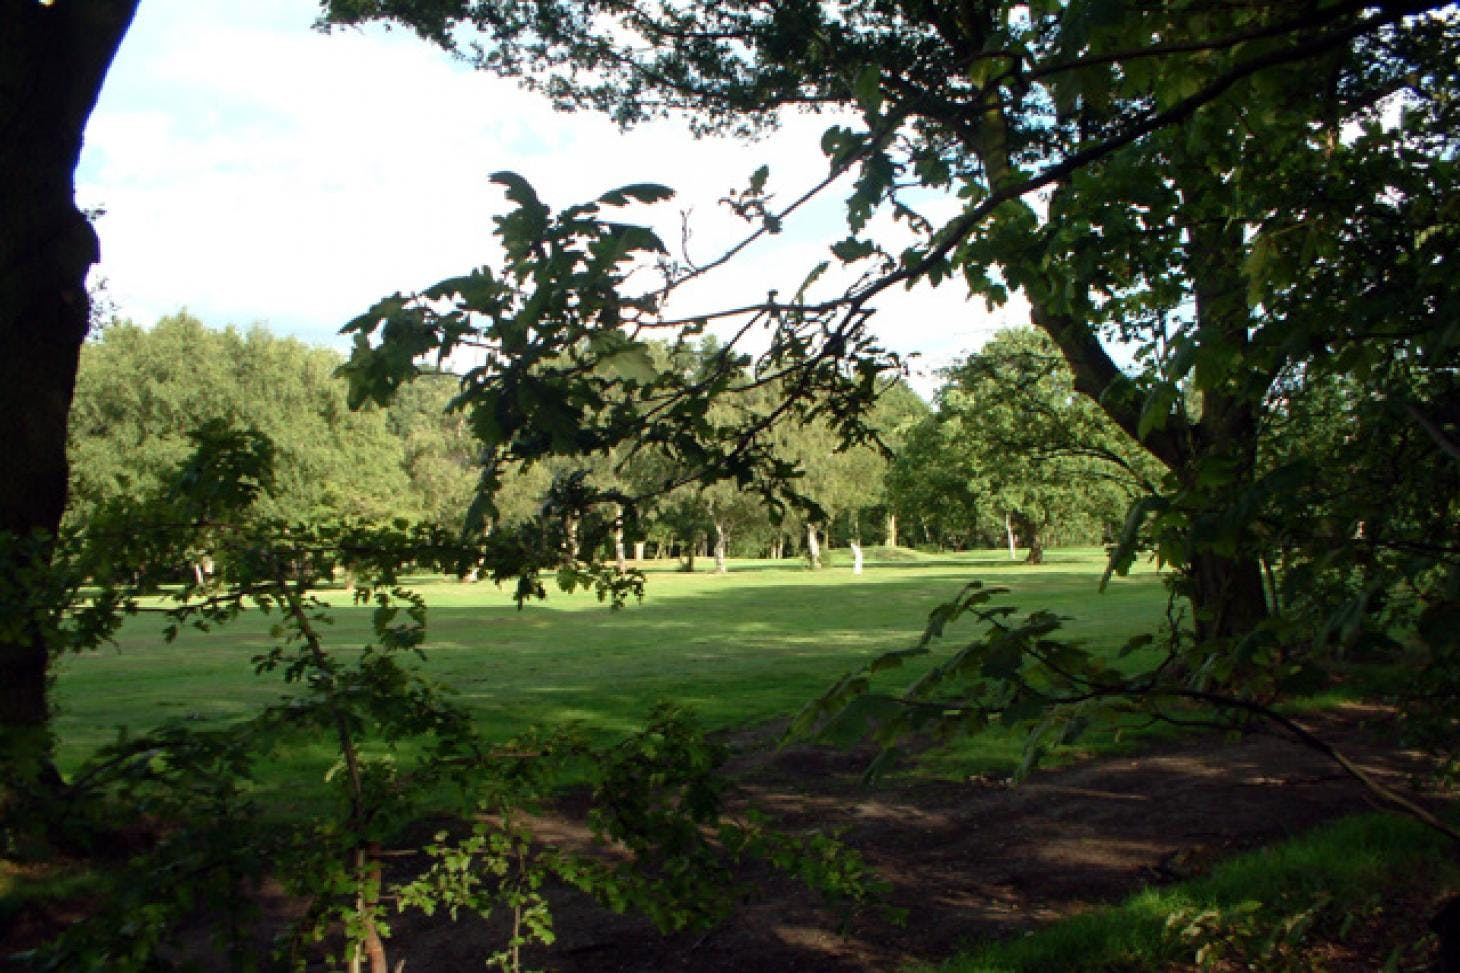 Langley Park Golf Club 18 hole golf course